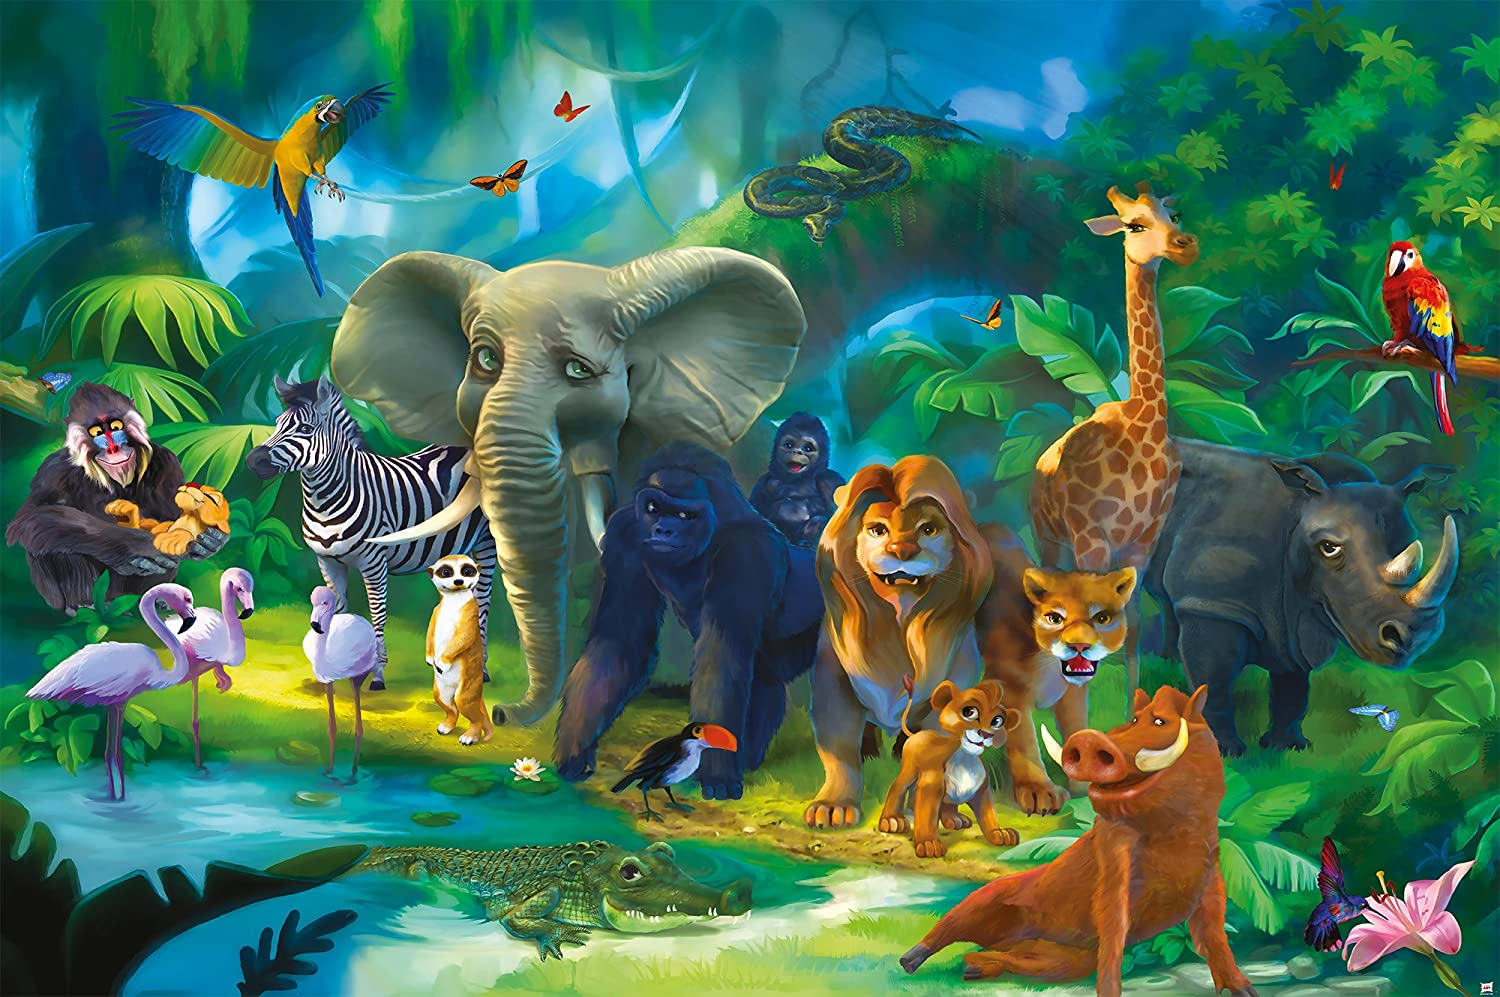 c921939af5ac Amazon.com  Great Art Wall Decoration Jungle Animals Wallpaper - Safari  Mural Children Room Poster Wild Animal Art Colourful Kids Design (55 Inch x  39.4 ...